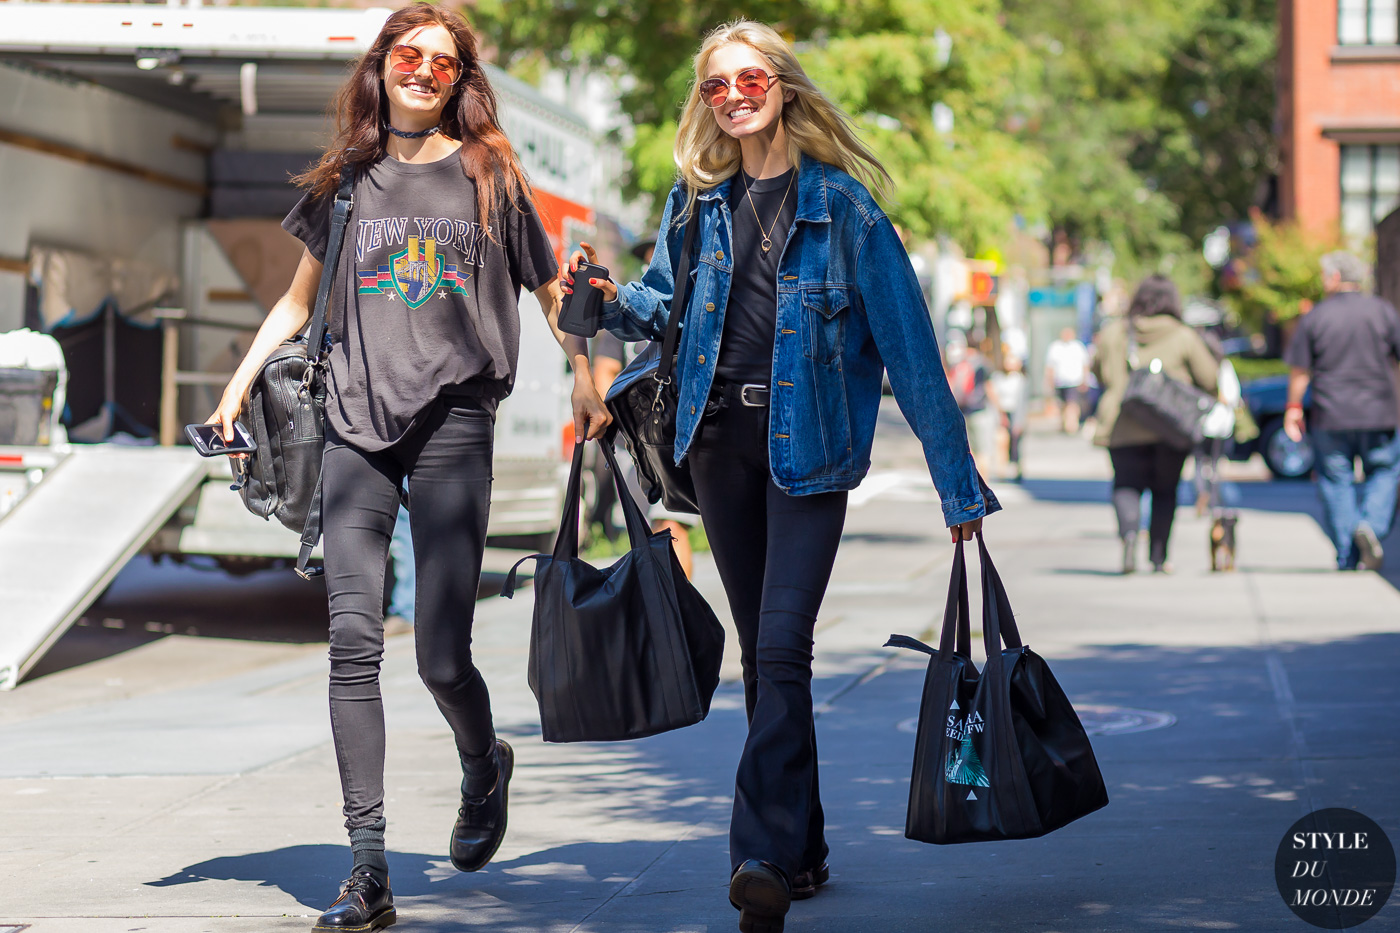 Model Twins Baylee and Kelsey Soles Street Style Street Fashion Streetsnaps by STYLEDUMONDE Street Style Fashion Photography